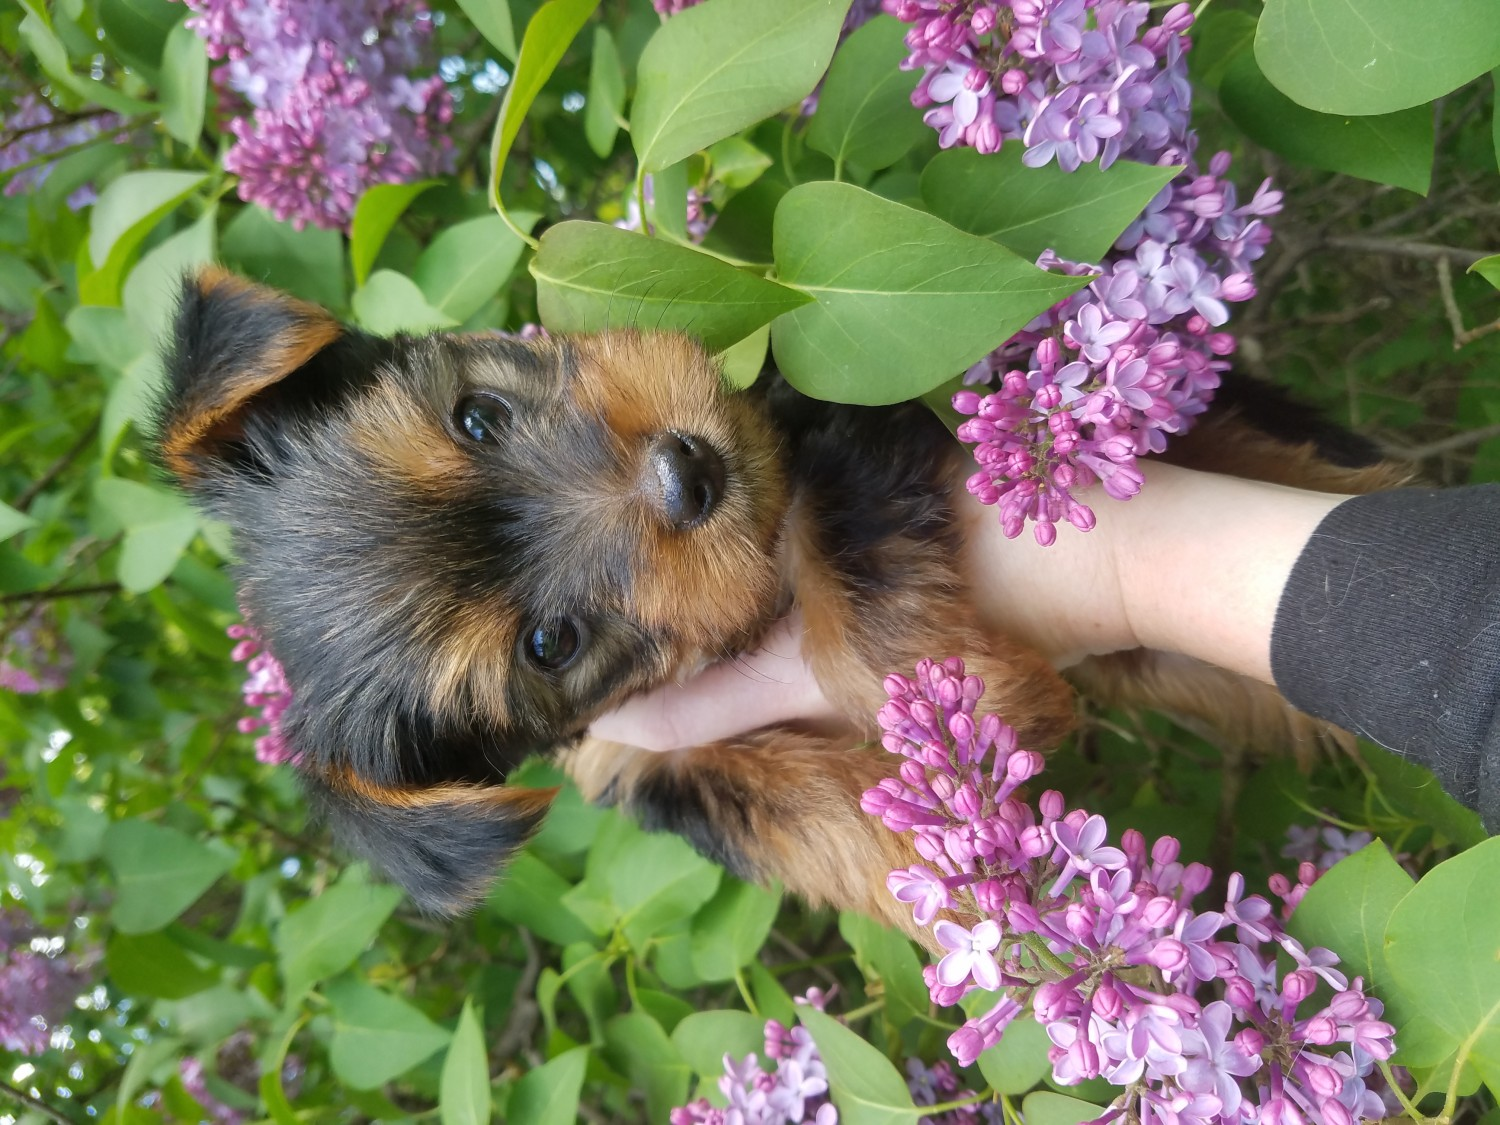 yorkshire terrier for sale mn yorkshire terrier puppies for sale albertville mn 196655 7153